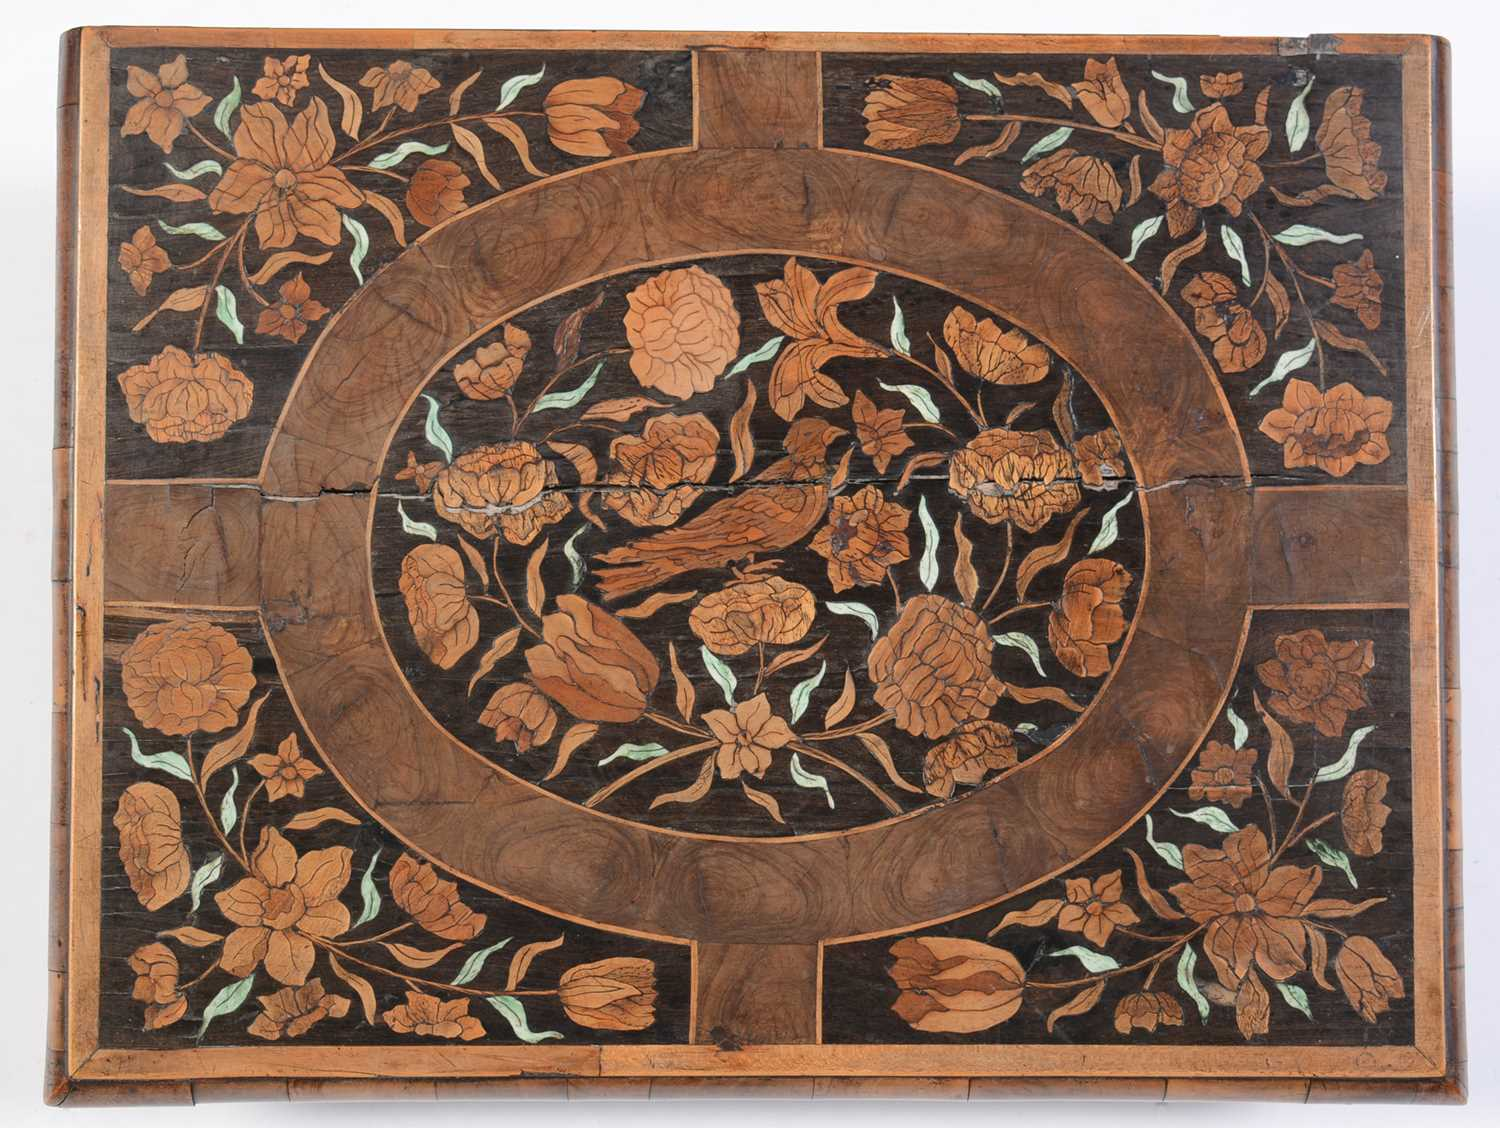 18th Century Dutch marquetry and oyster veneered lace box - Image 2 of 9